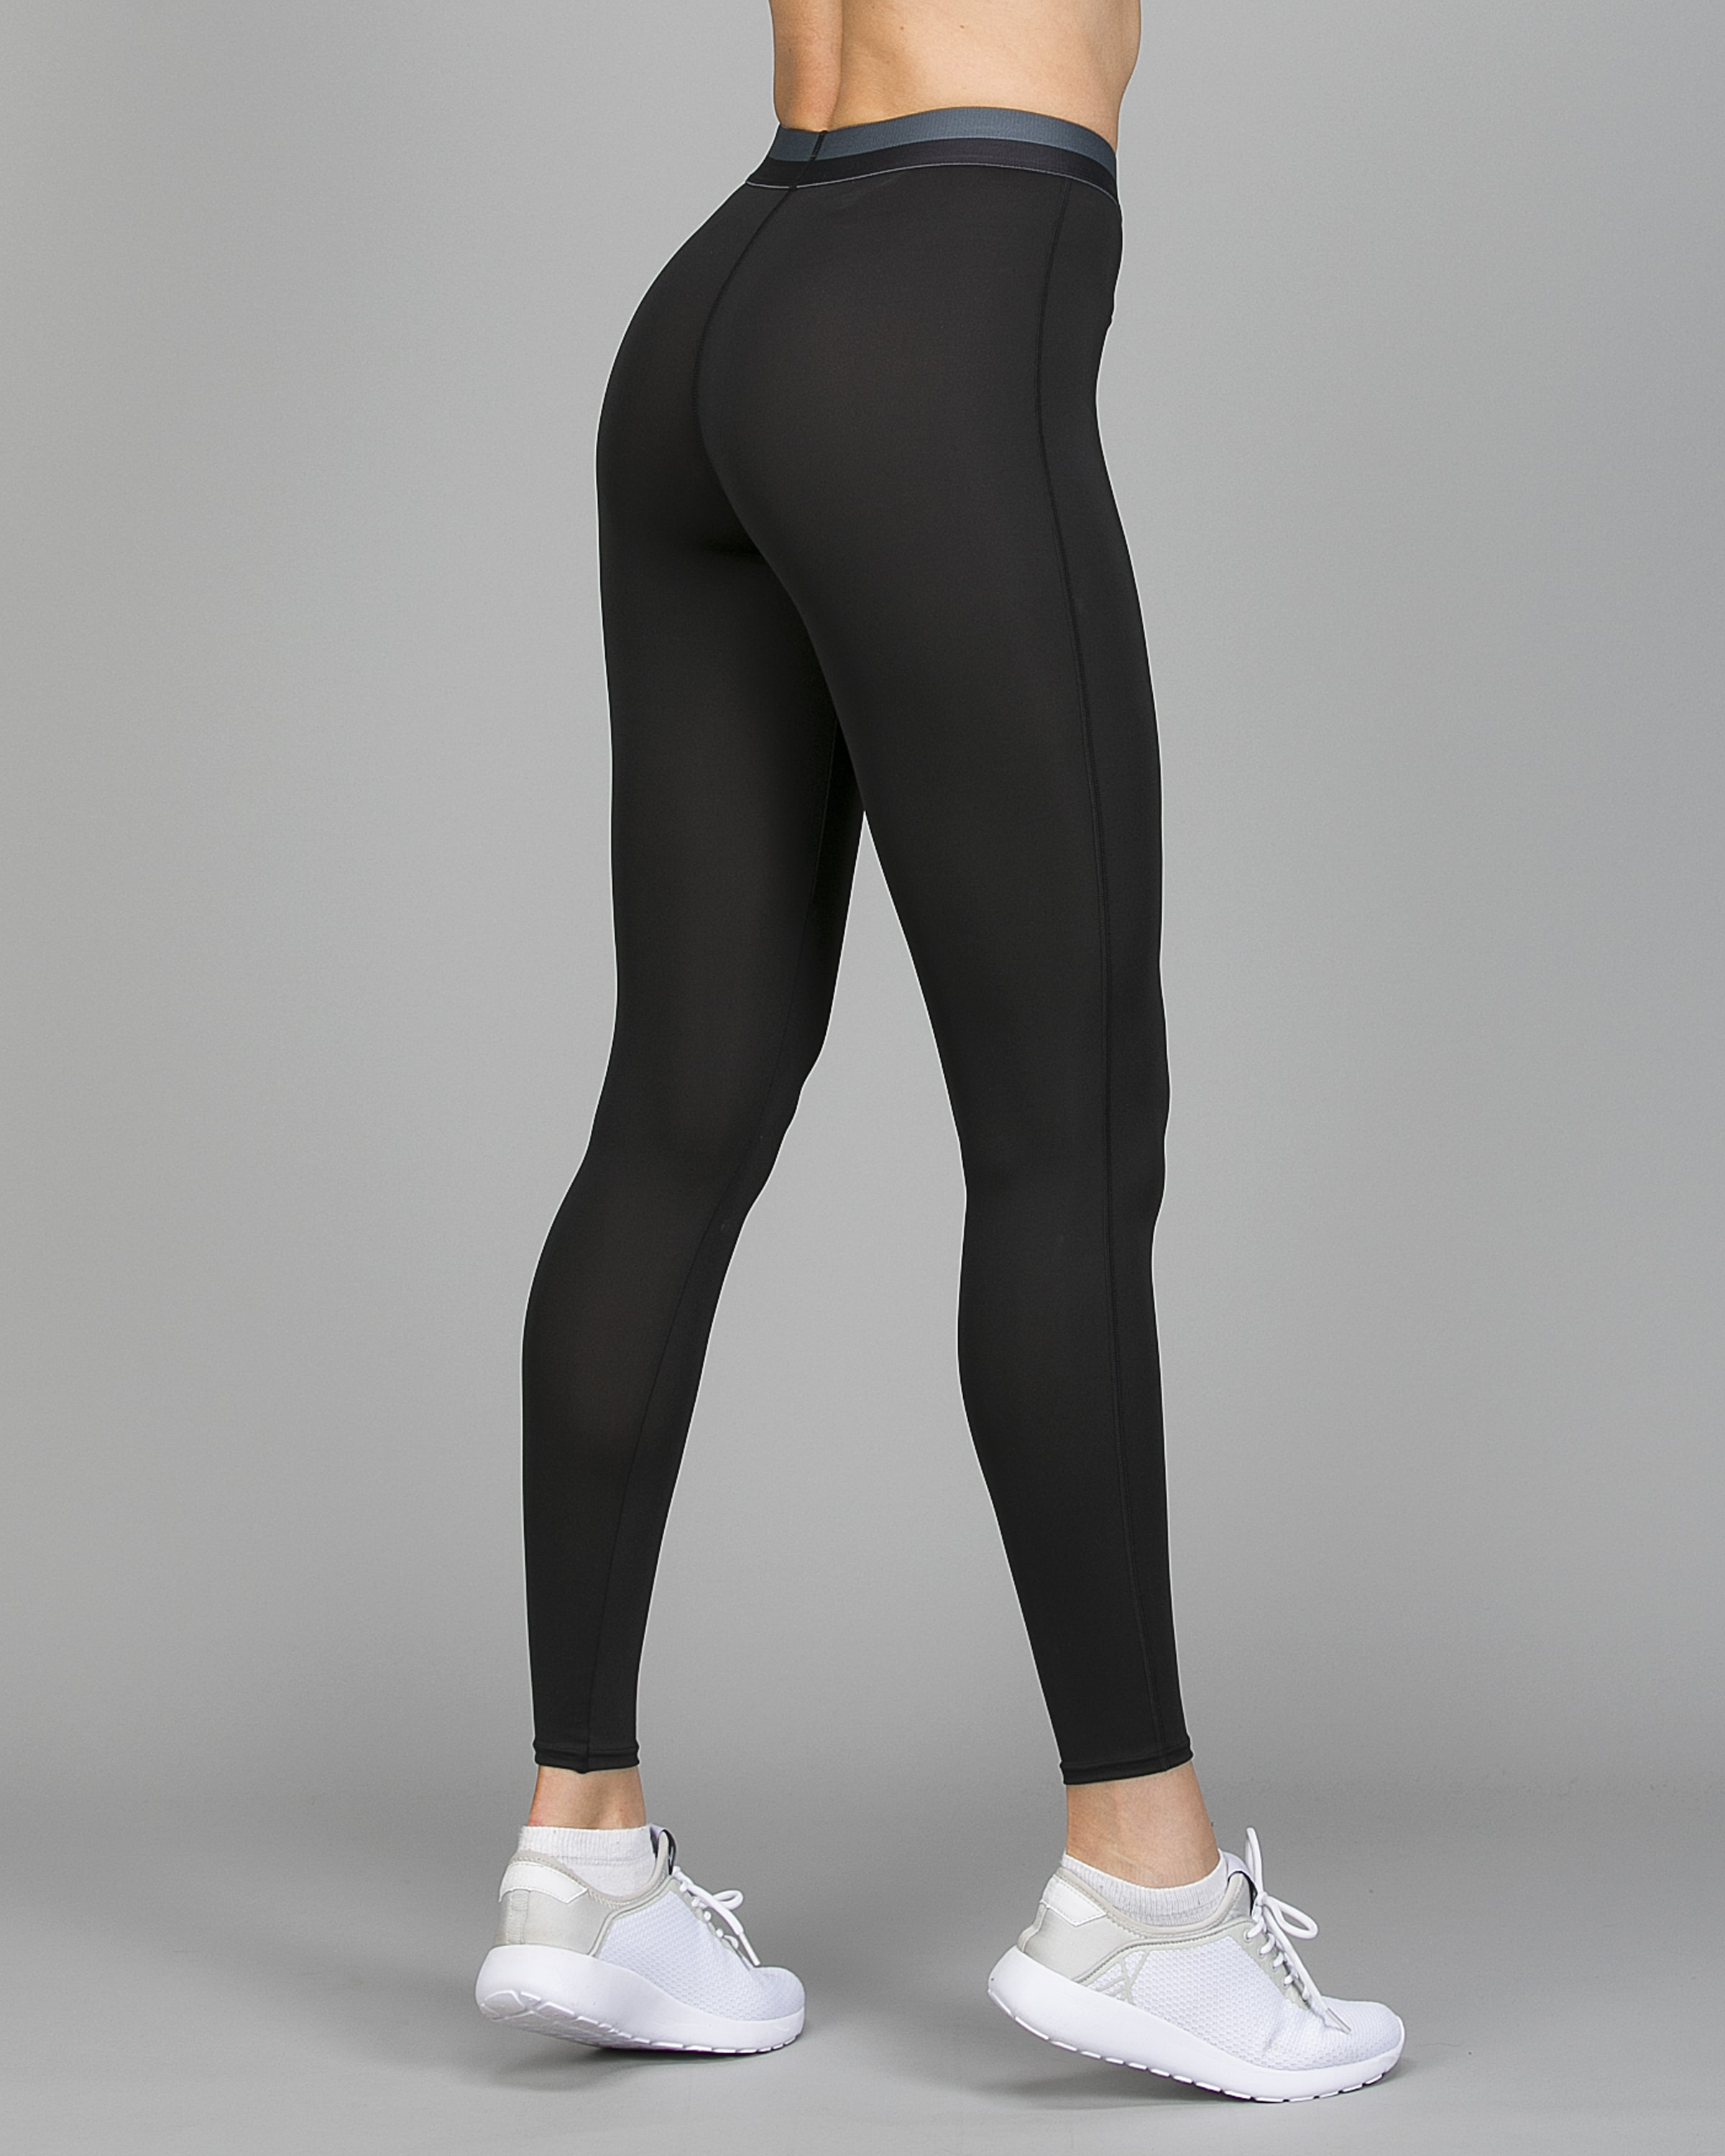 Shock Absorber Active Branded Legging S06TE c